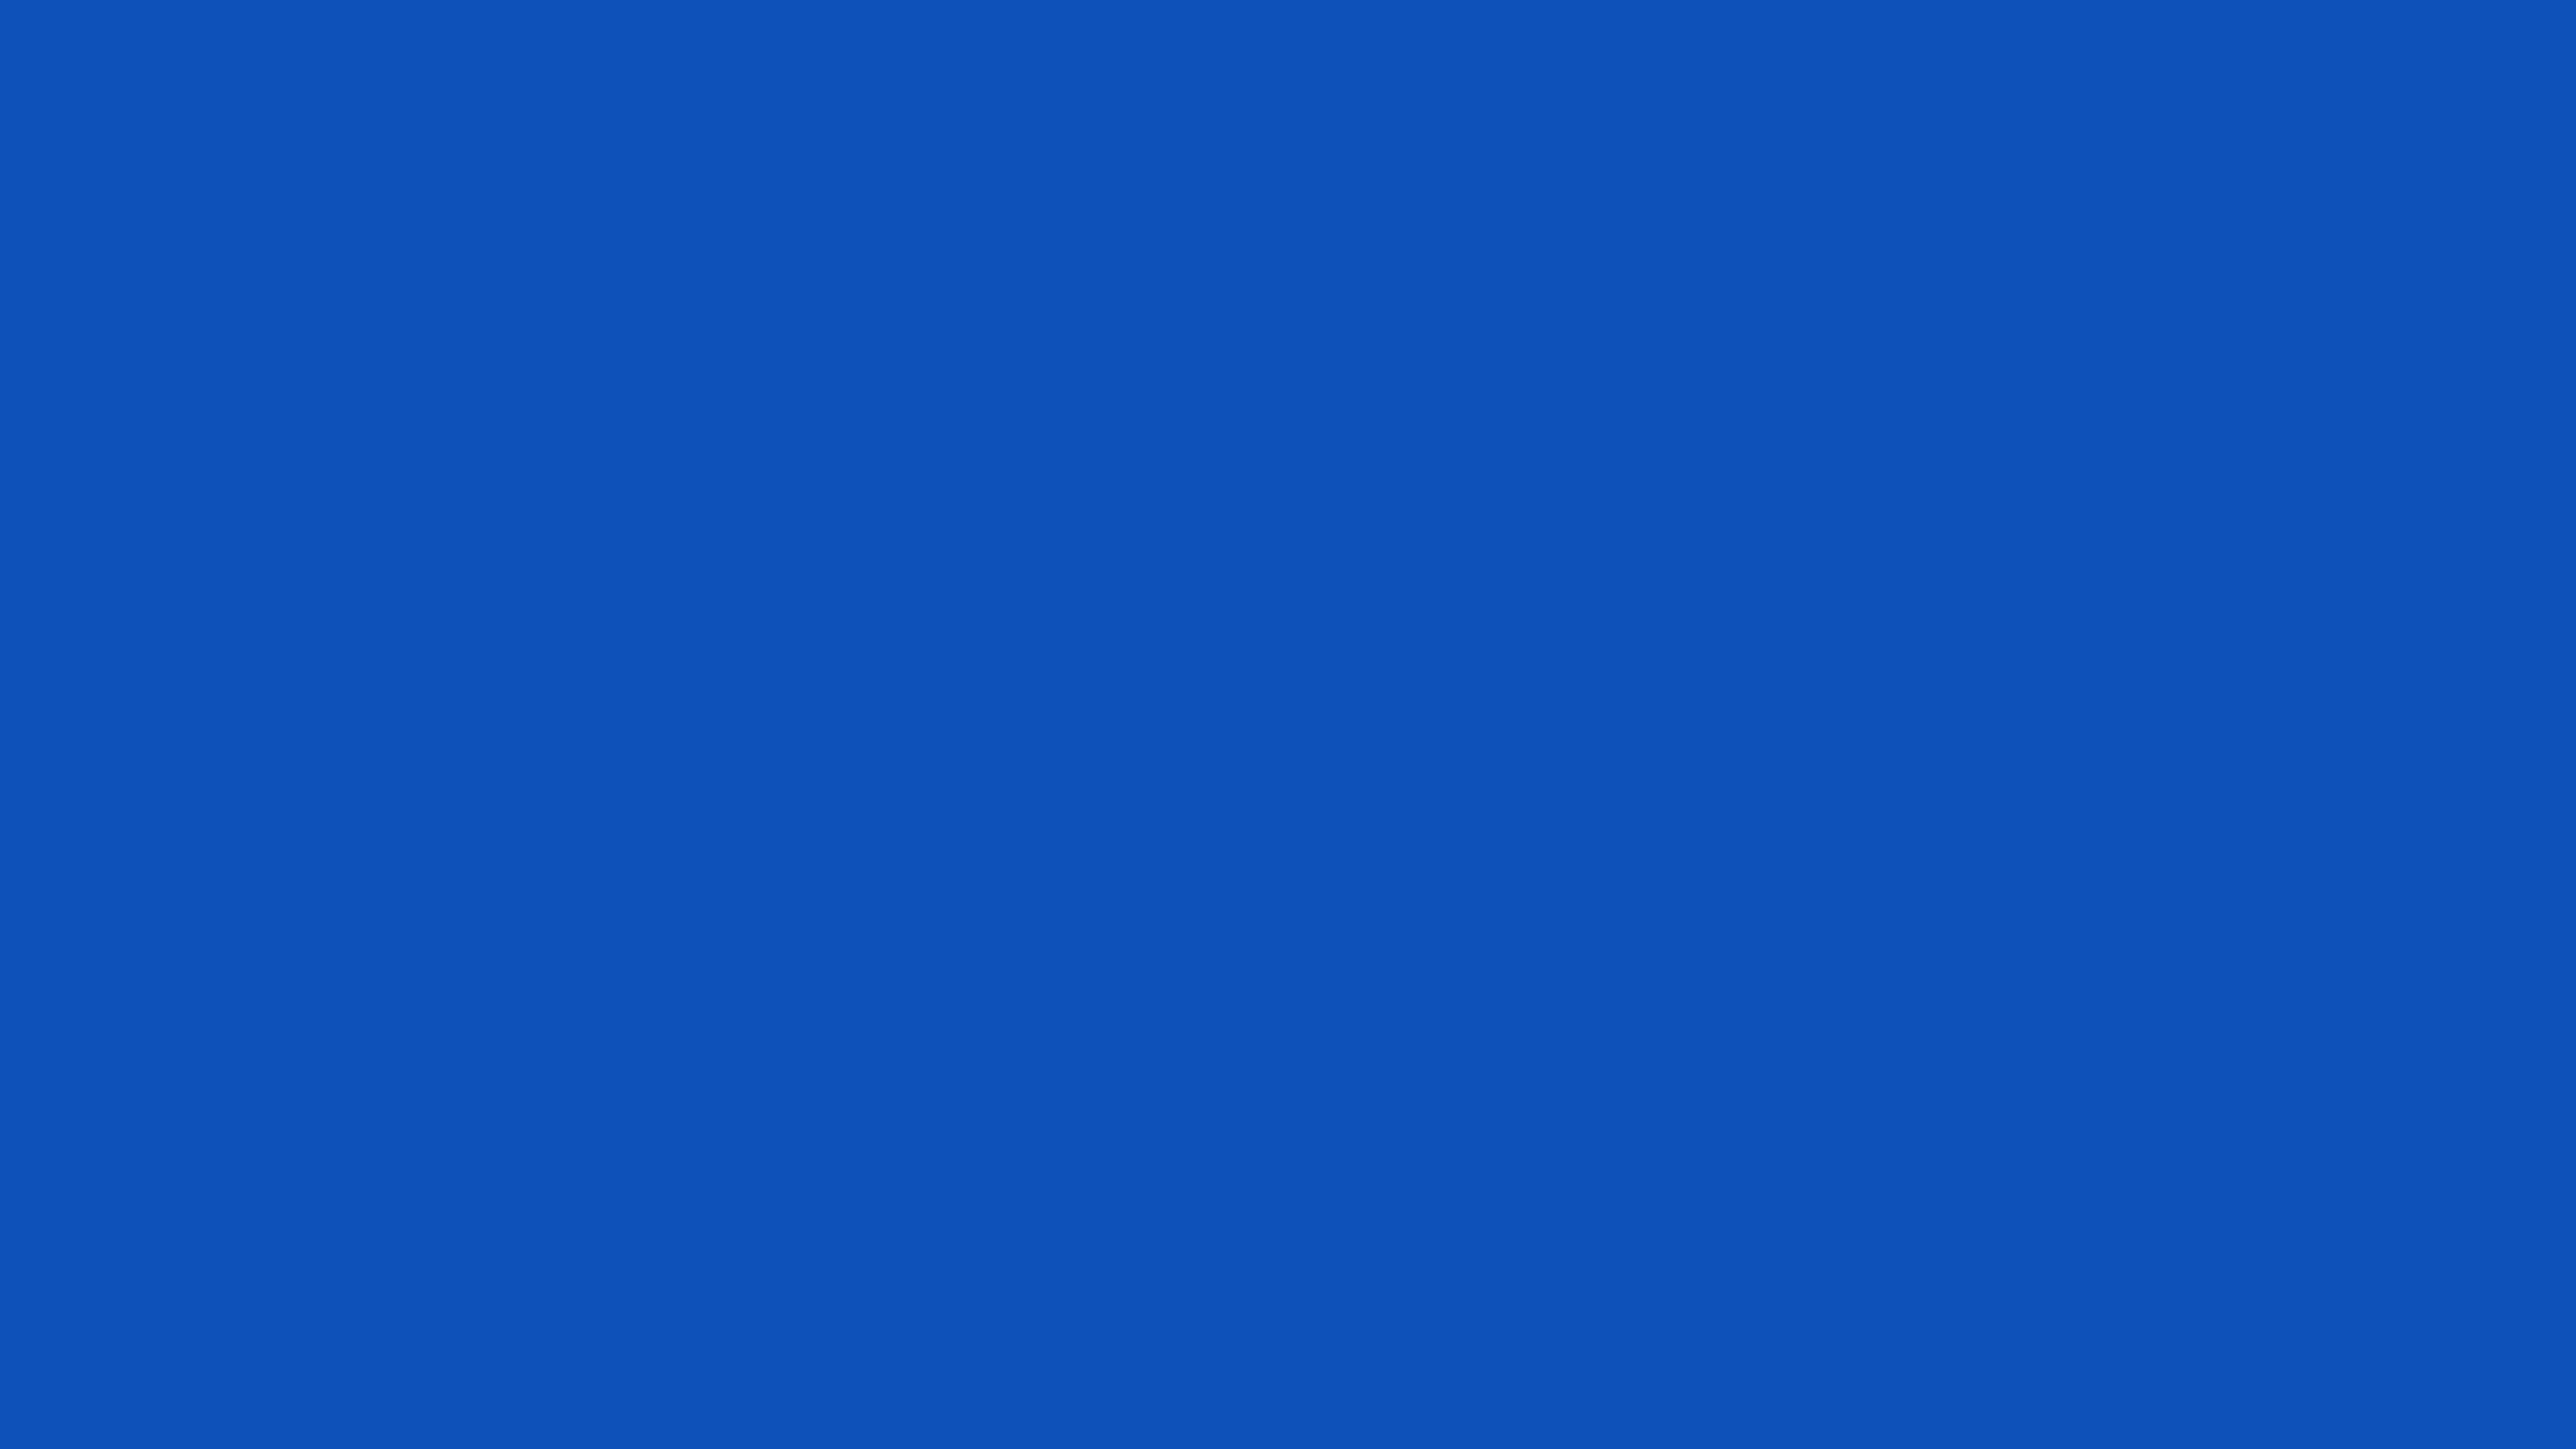 7680x4320 Sapphire Solid Color Background